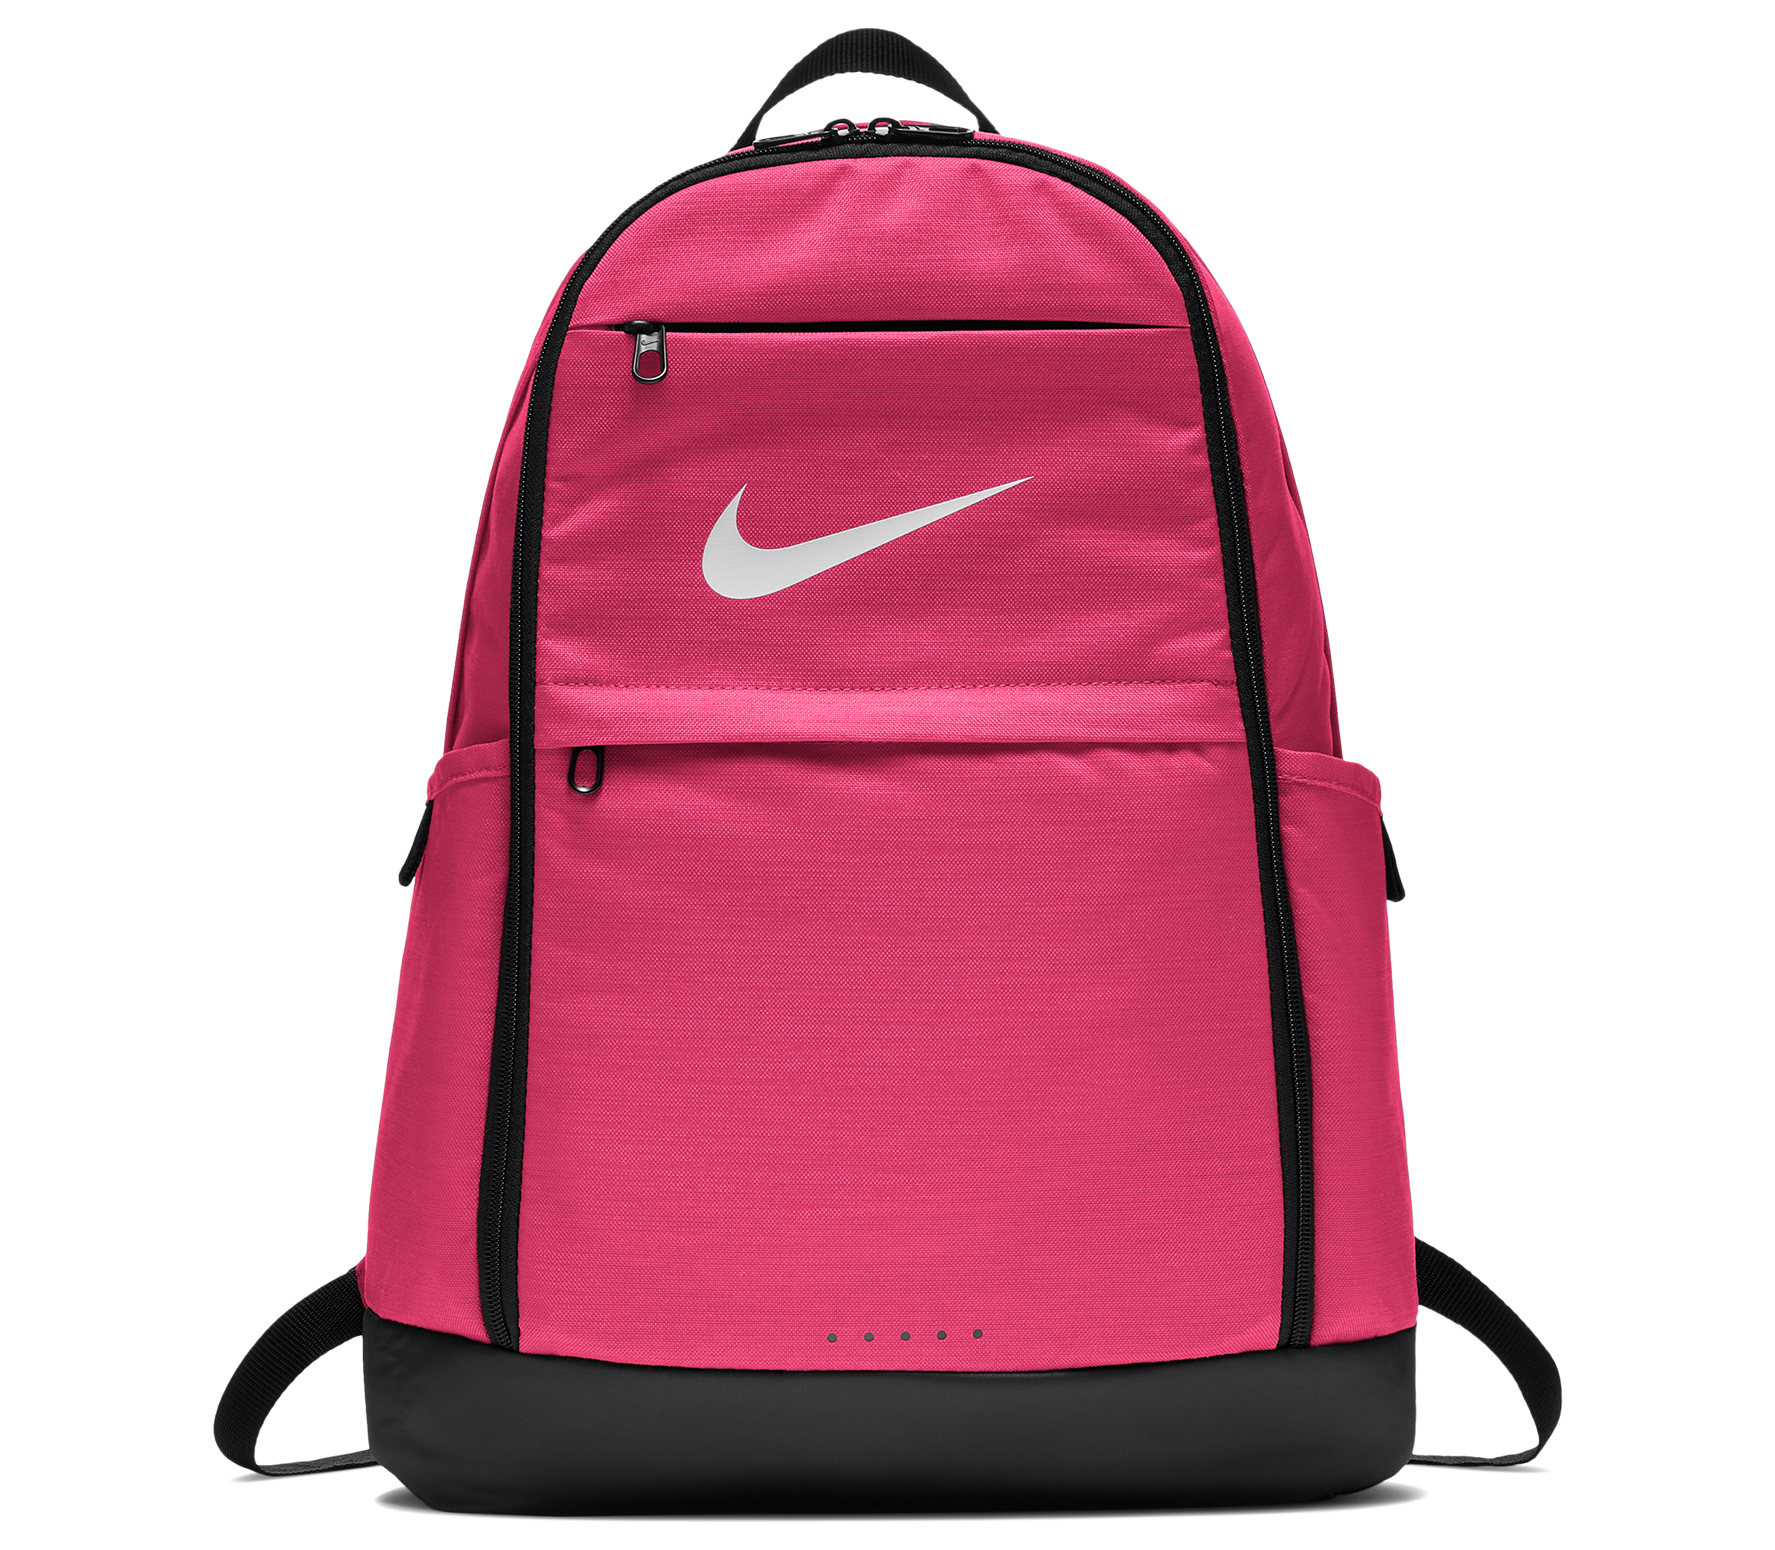 6231918e1bfe Nike - Brasilia training backpack (pink black) - buy it at the ...